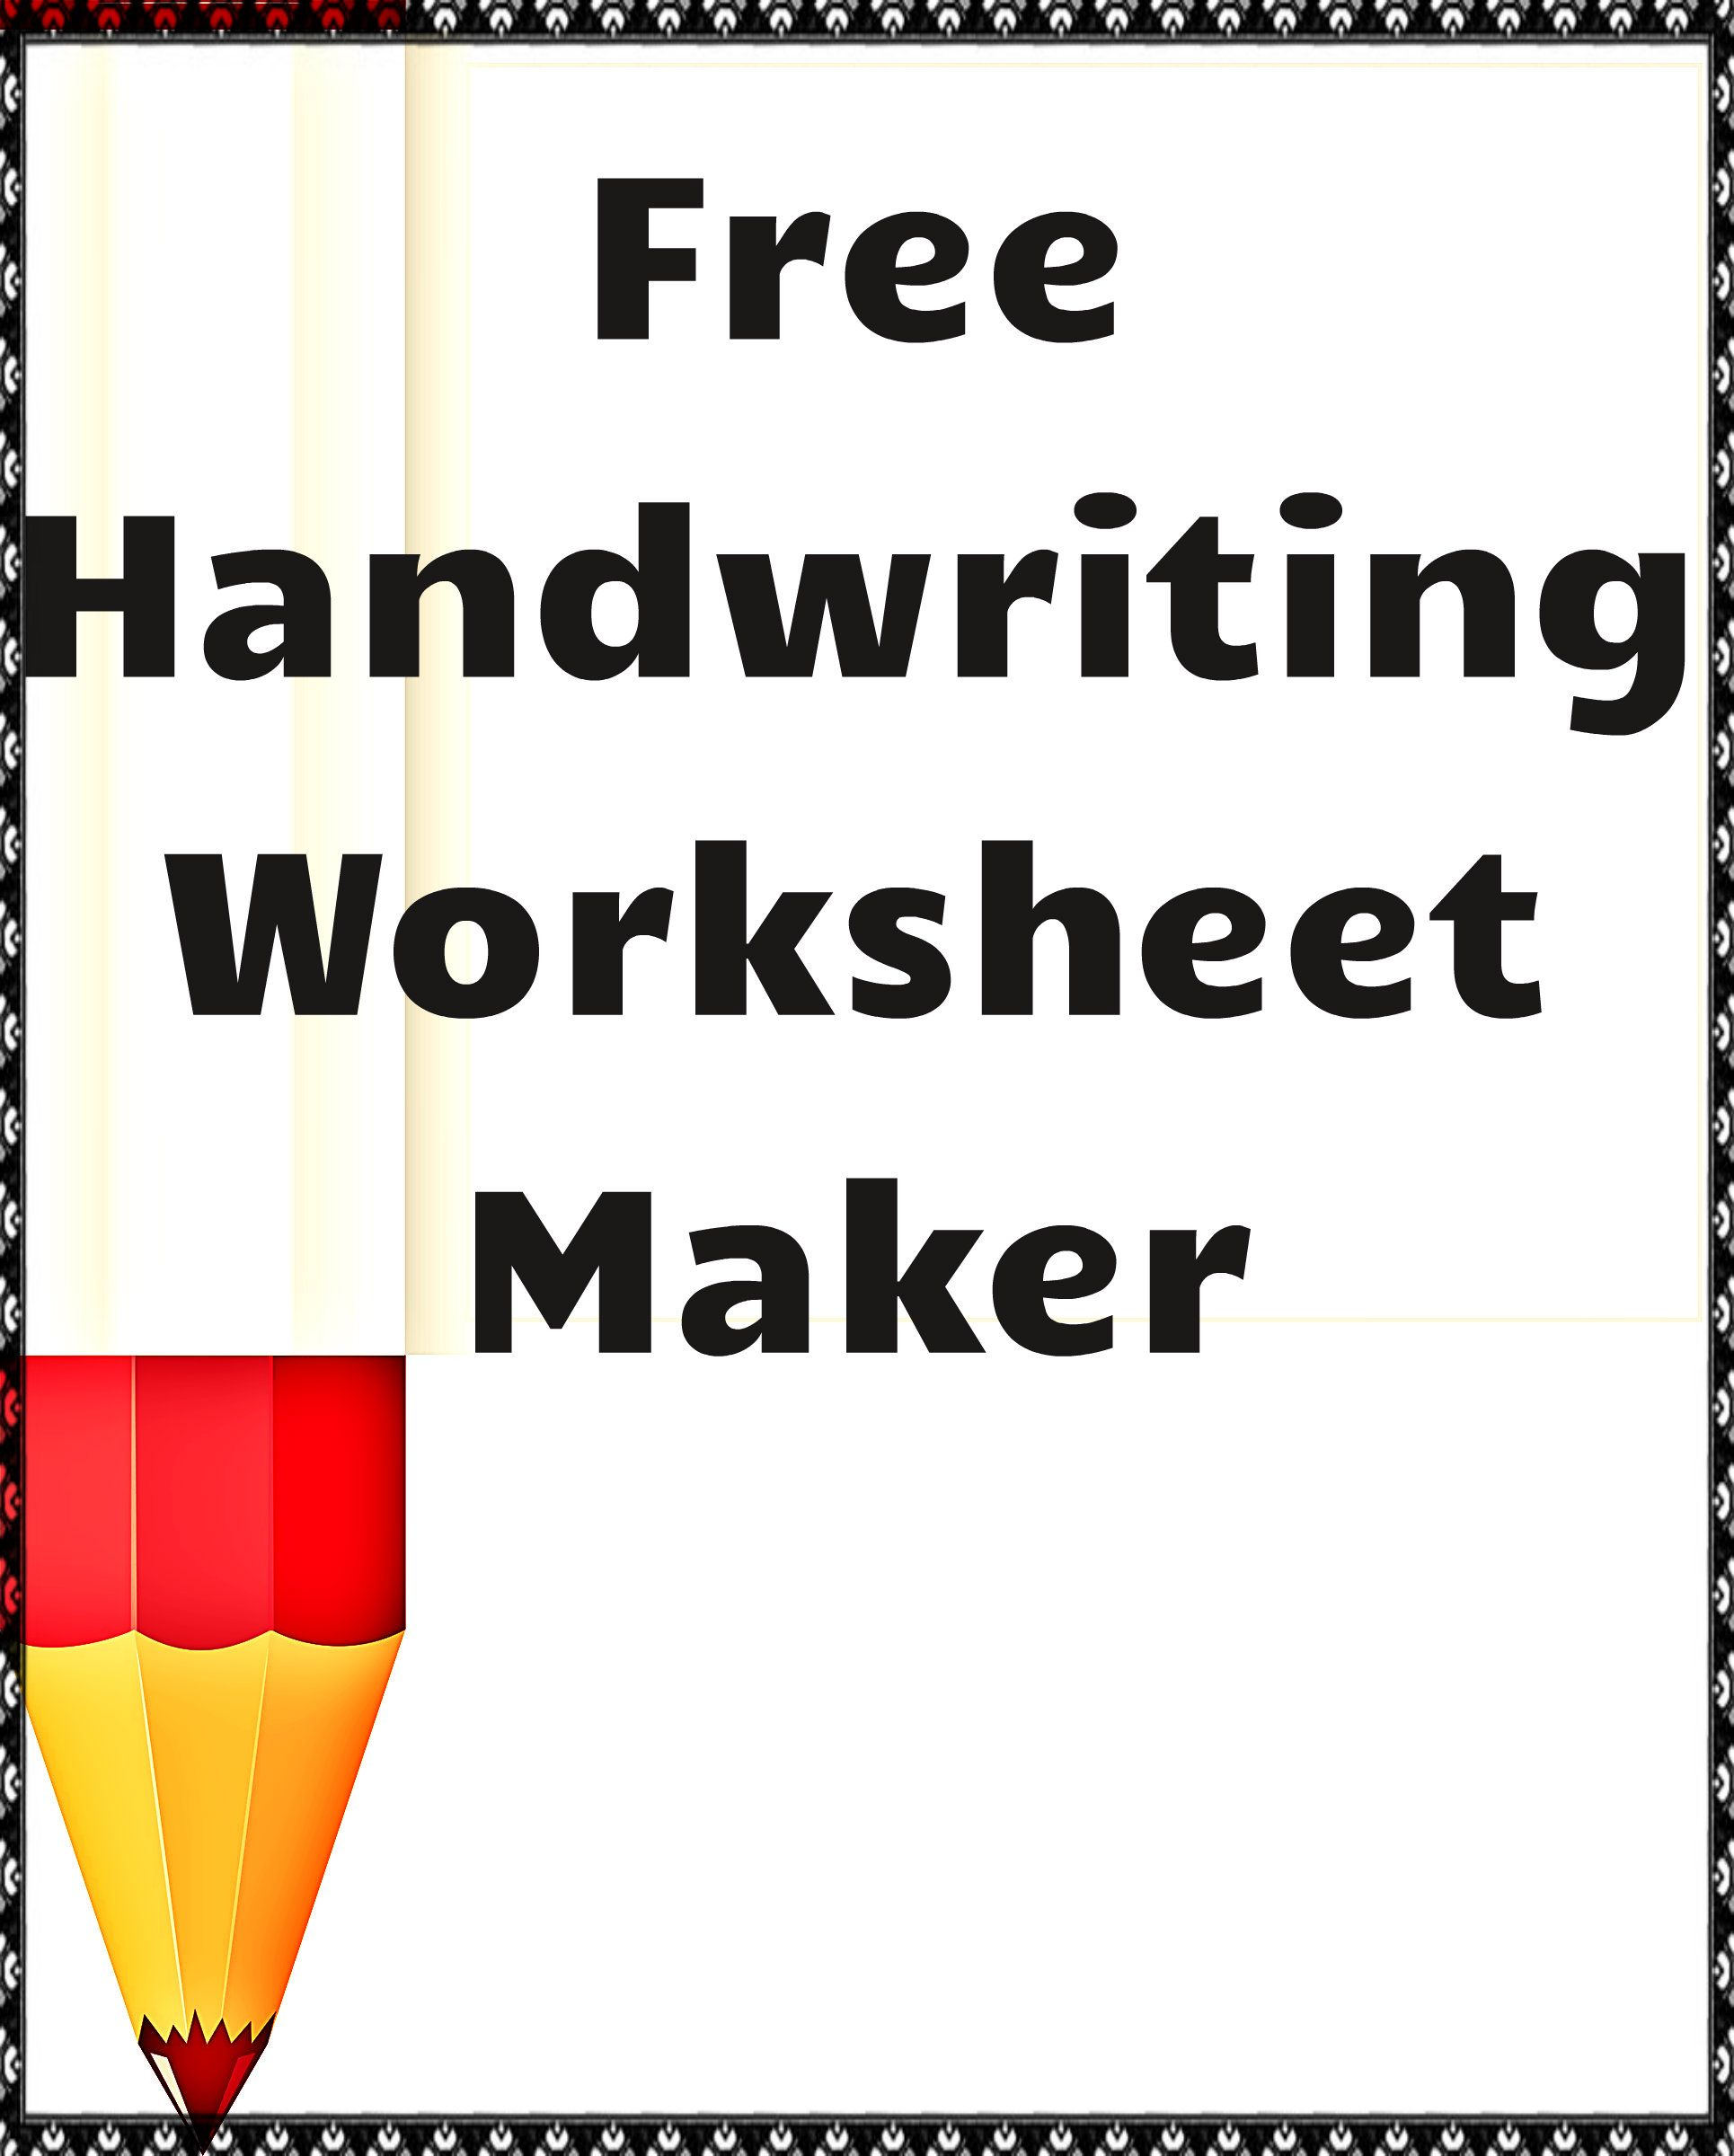 Worksheets Worksheet Maker Free free handwriting worksheet maker kindergartenklub com pinterest maker